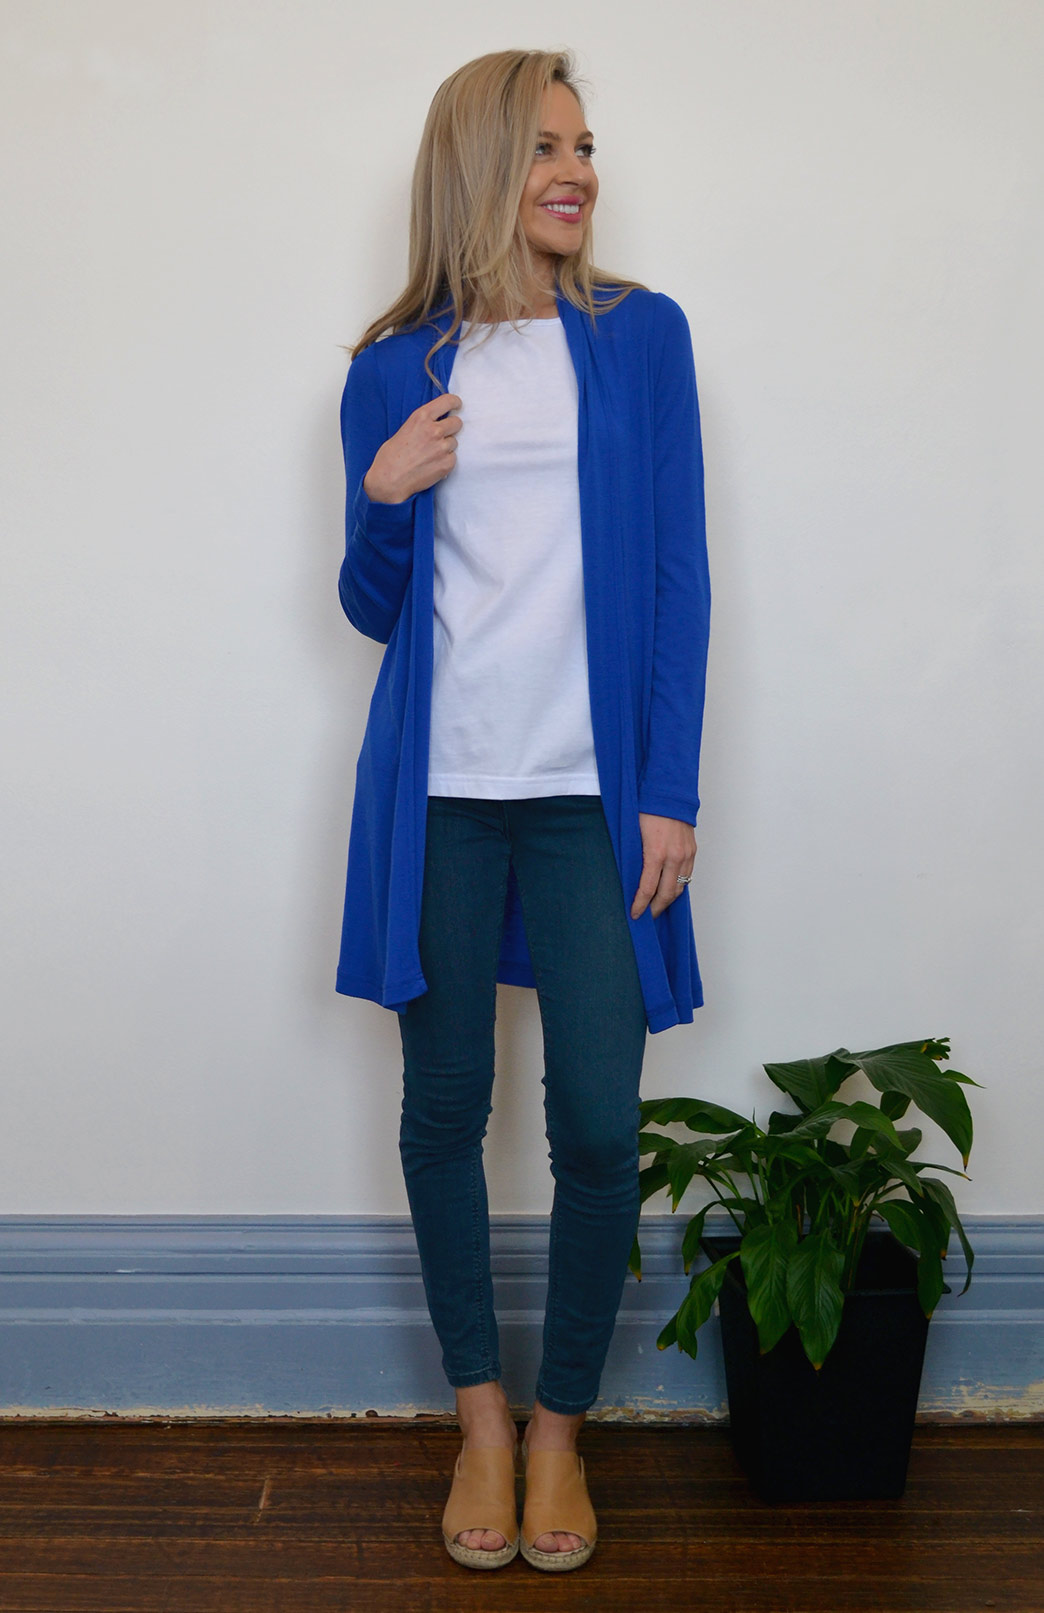 Drape Cardigan - Lightweight - Women's Electric Blue Wool Drape Cardigan with no buttons or fastenings - Smitten Merino Tasmania Australia